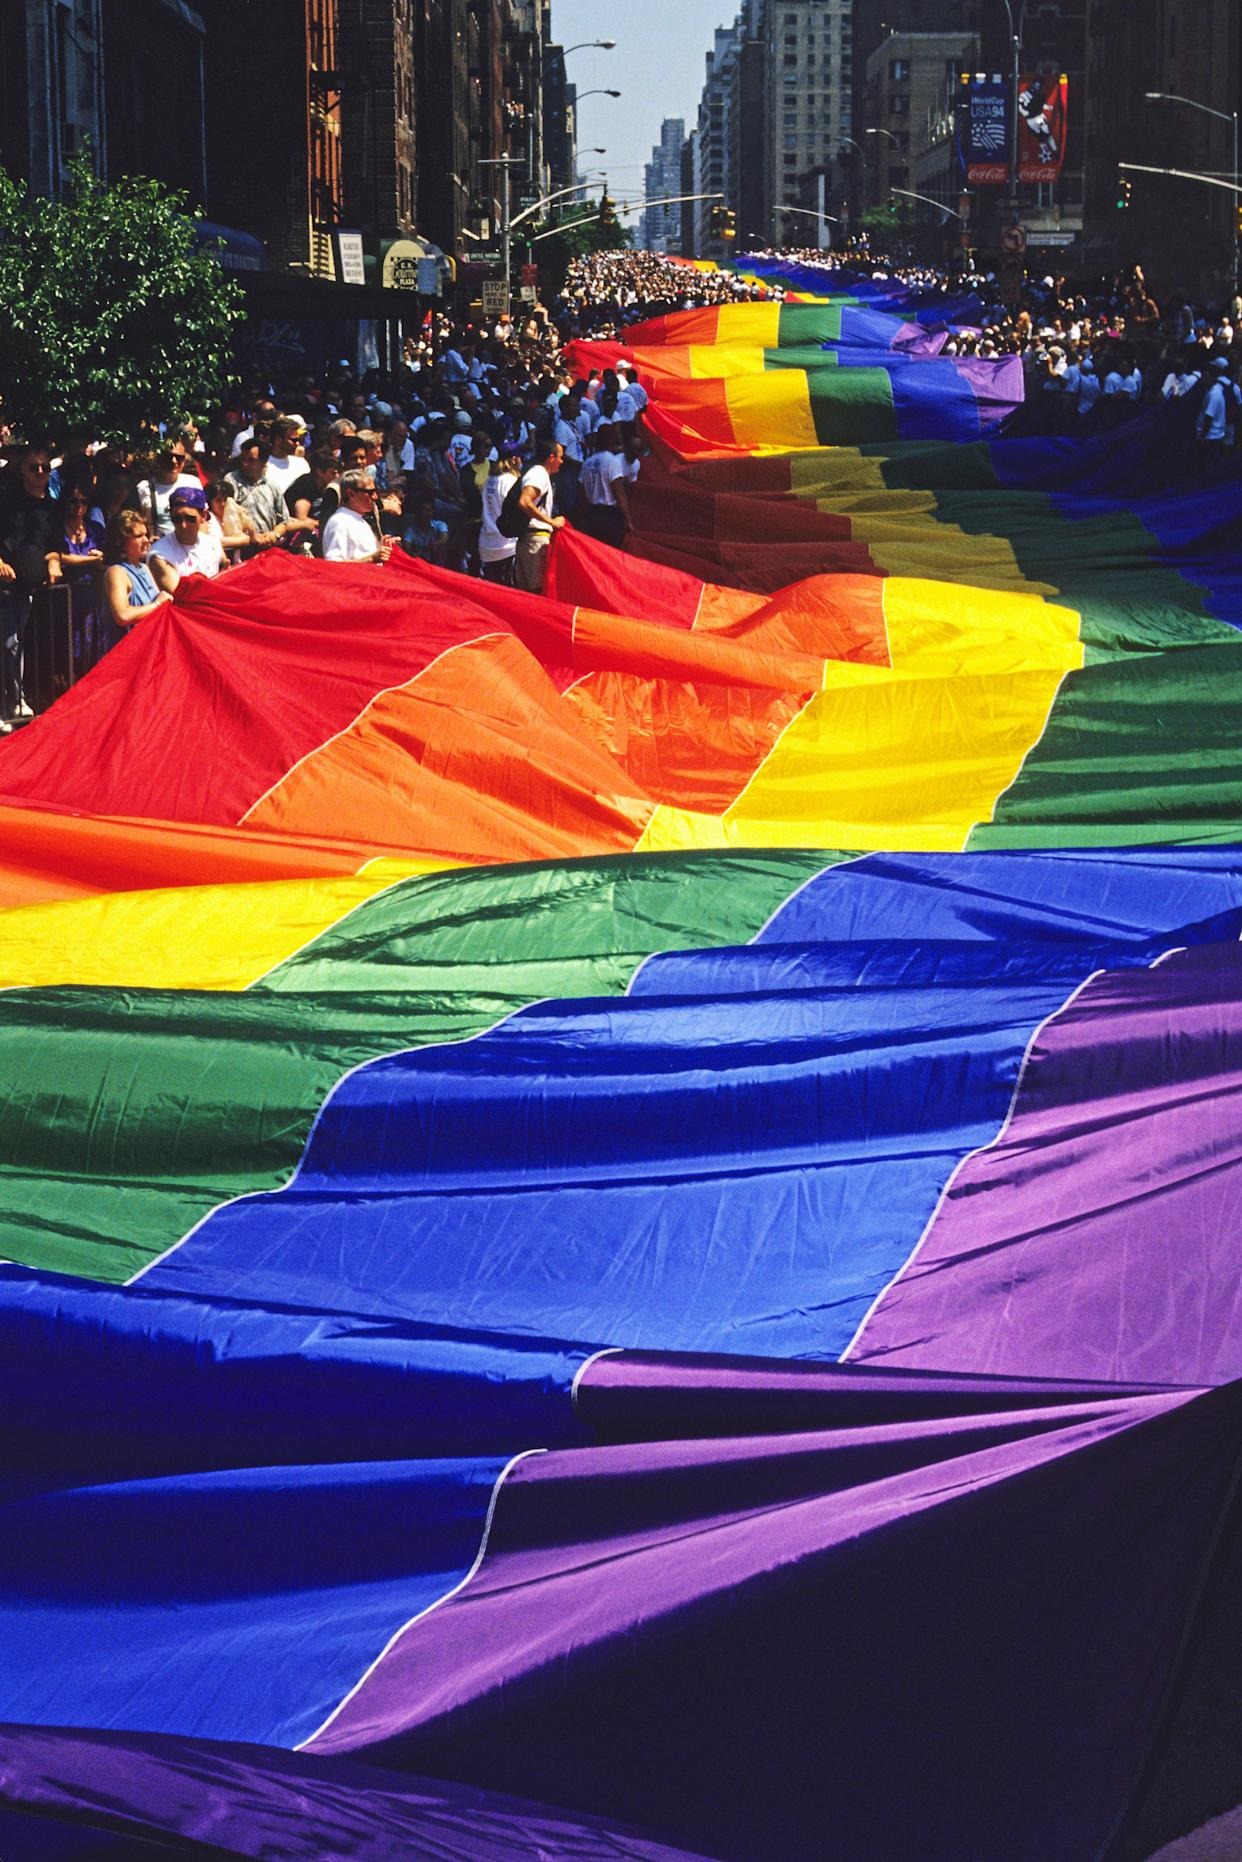 Hundreds of marchers carrying a rainbow flag at the Gay Pride Parade, commemorating the 25th anniversary of the Stonewall police raid in Greenwich Village. (Photo by ANDREW HOLBROOKE/Corbis via Getty Images)